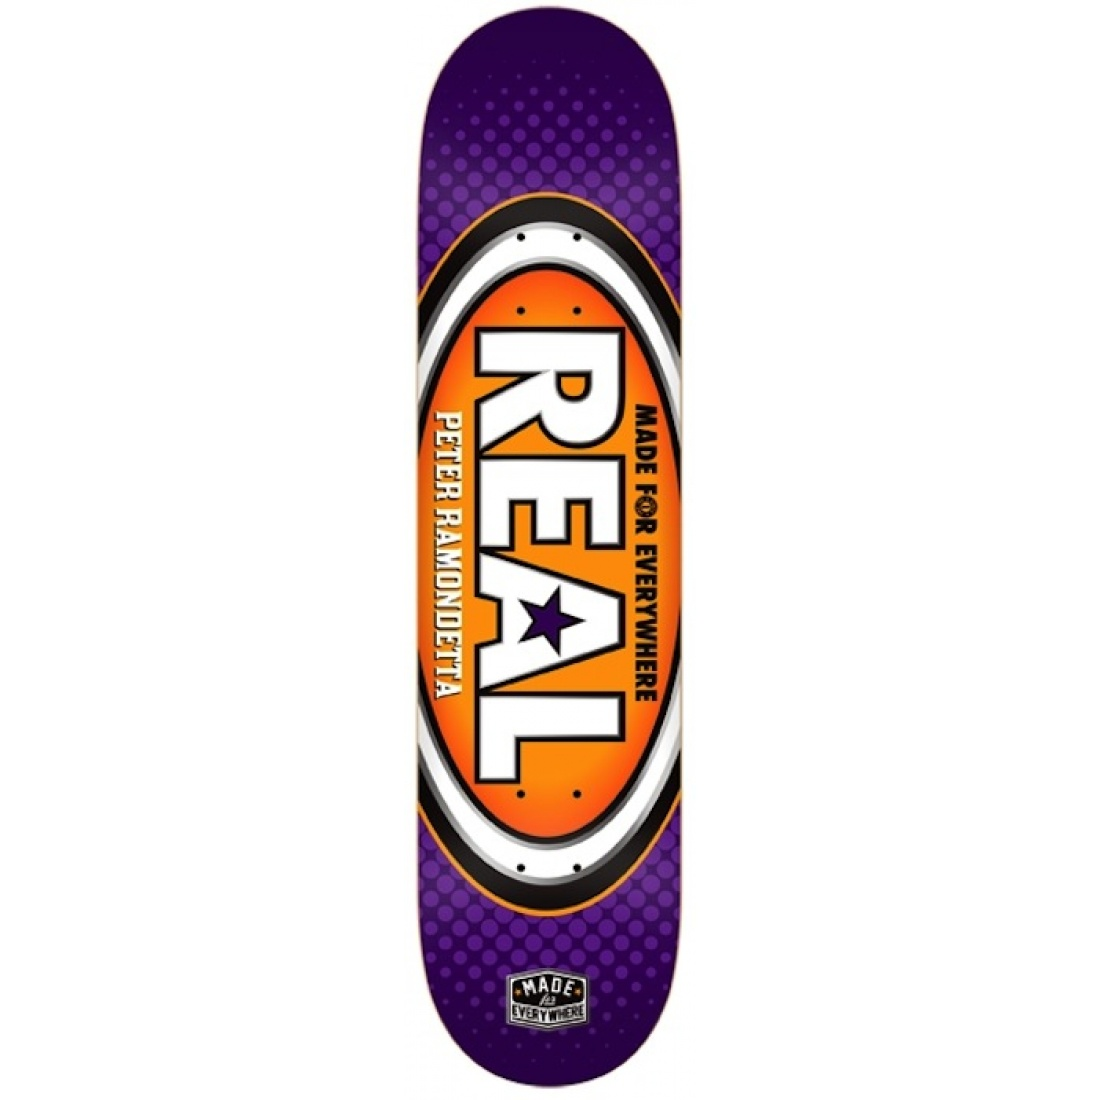 RL-Ramondetta Everywhere 8.1 Deck